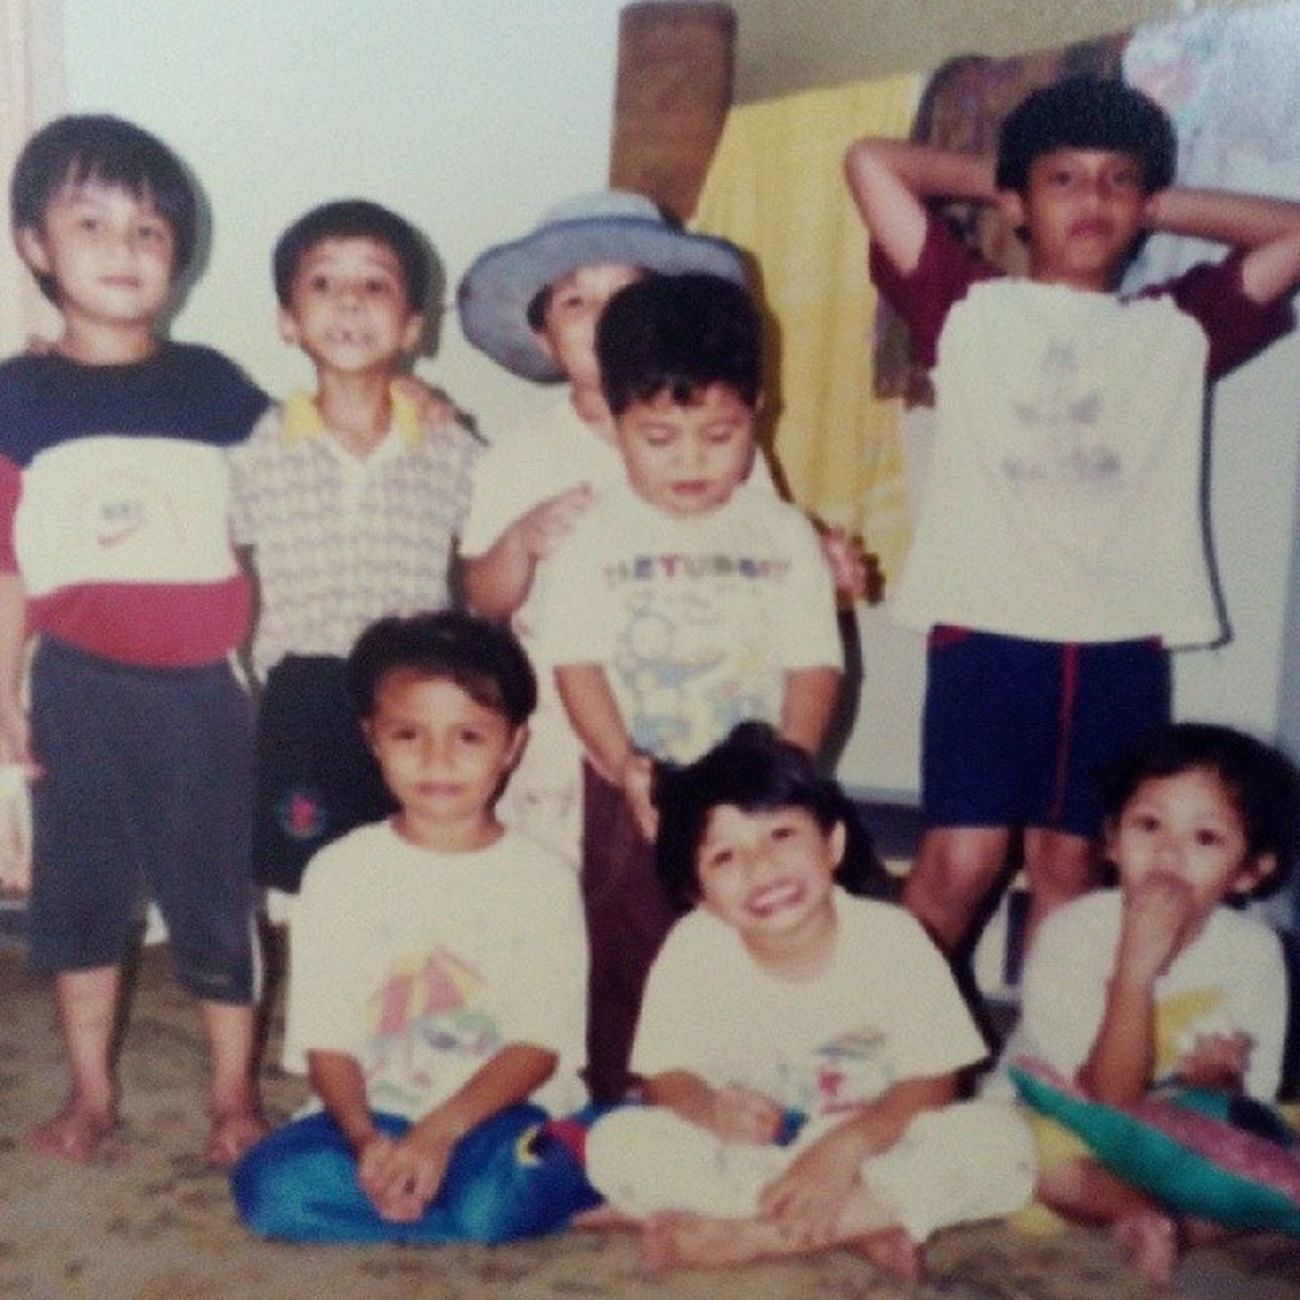 Throwback SemasaKecil ...